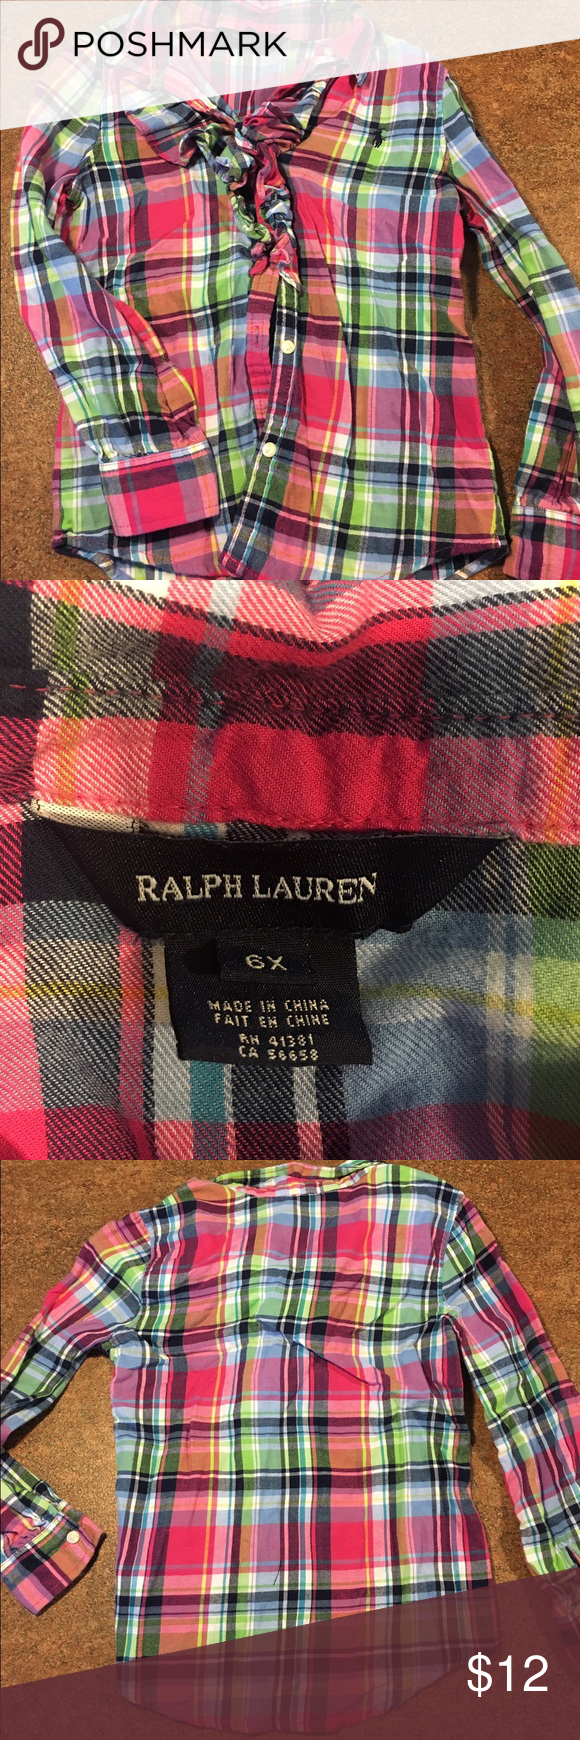 Girls plaid Ralph Lauren button up size  6x Like new plaid button up with accent ruffles on front. Smoke free/pet free home. Size 6x. Ralph Lauren Shirts & Tops Button Down Shirts